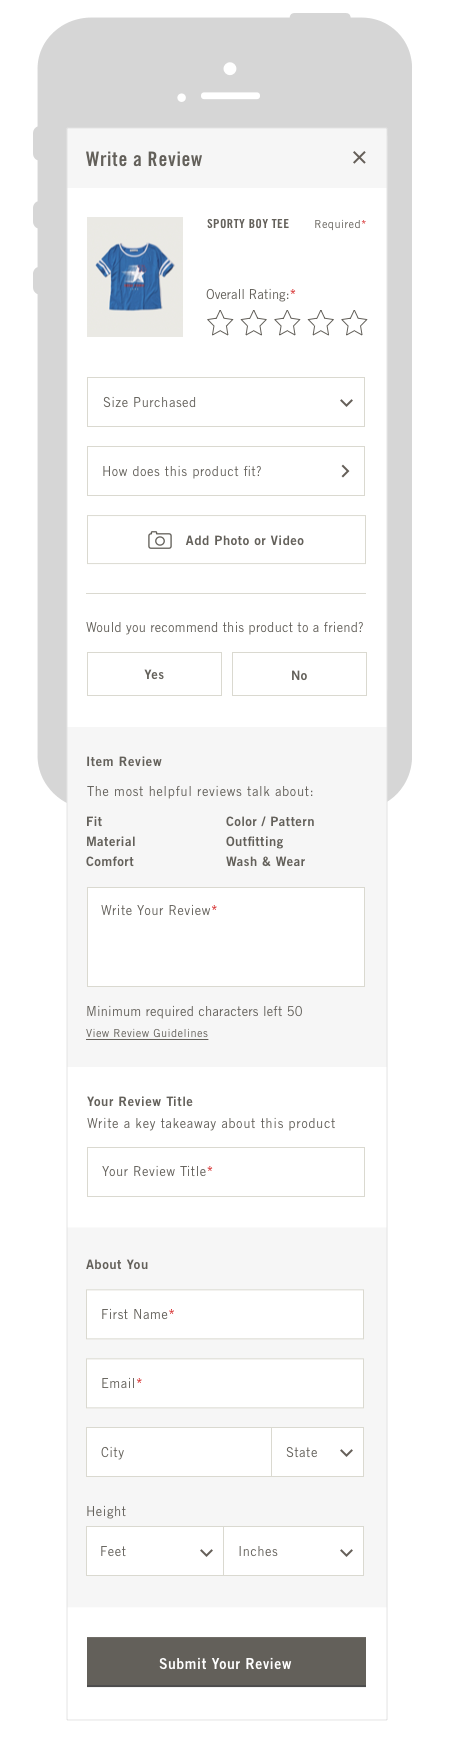 ANF Mobile Review Form